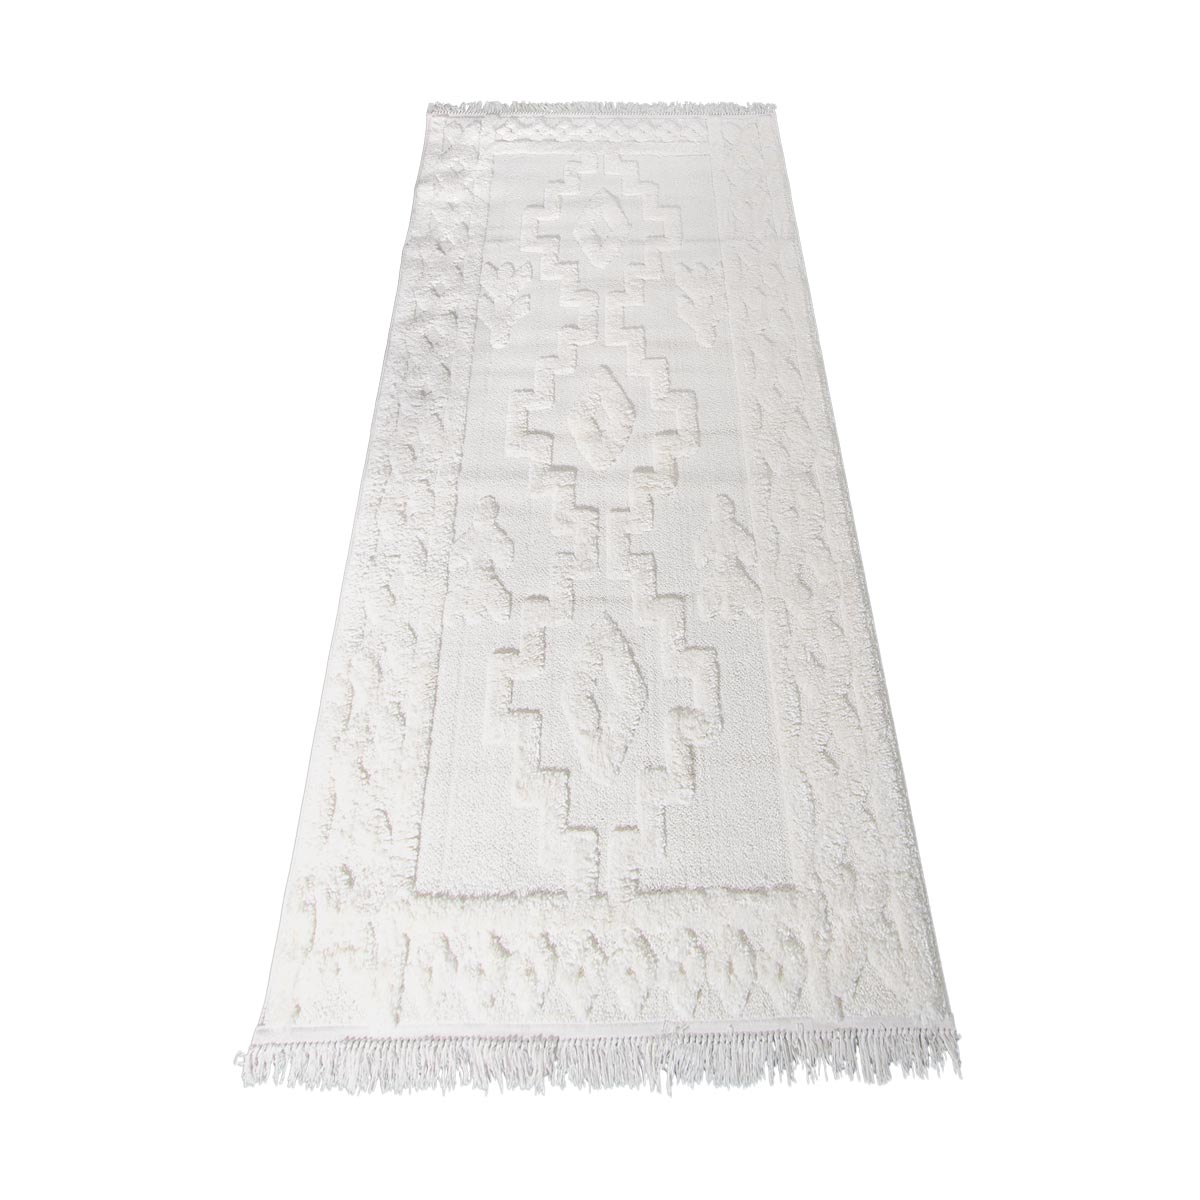 Atlas Rug 10 Cream Runner - Fringes 7